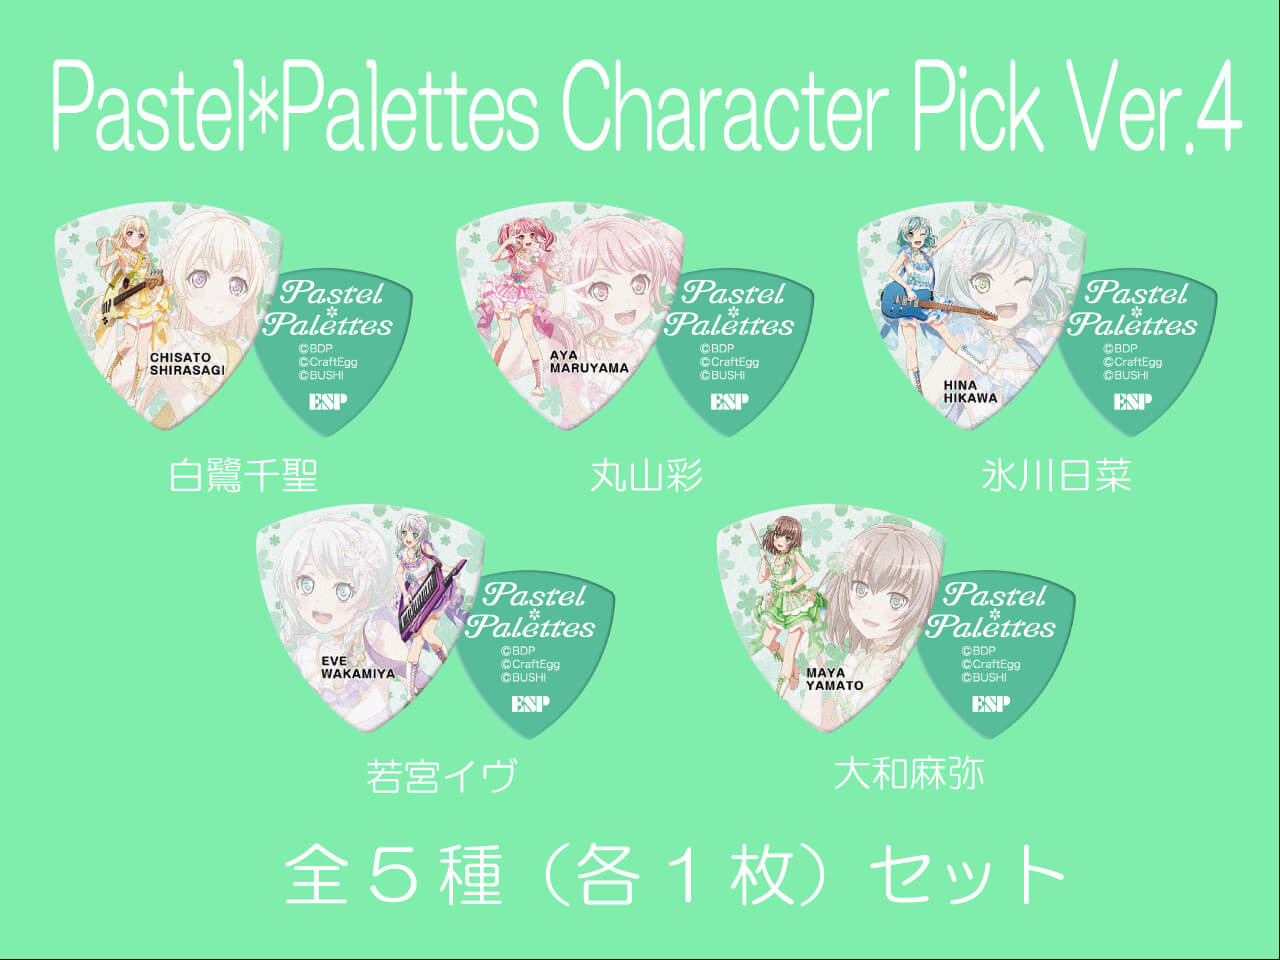 【ESP×BanG Dream!コラボピック】Pastel*Palettes Character Pick Ver.4 全5種(各一枚)セット